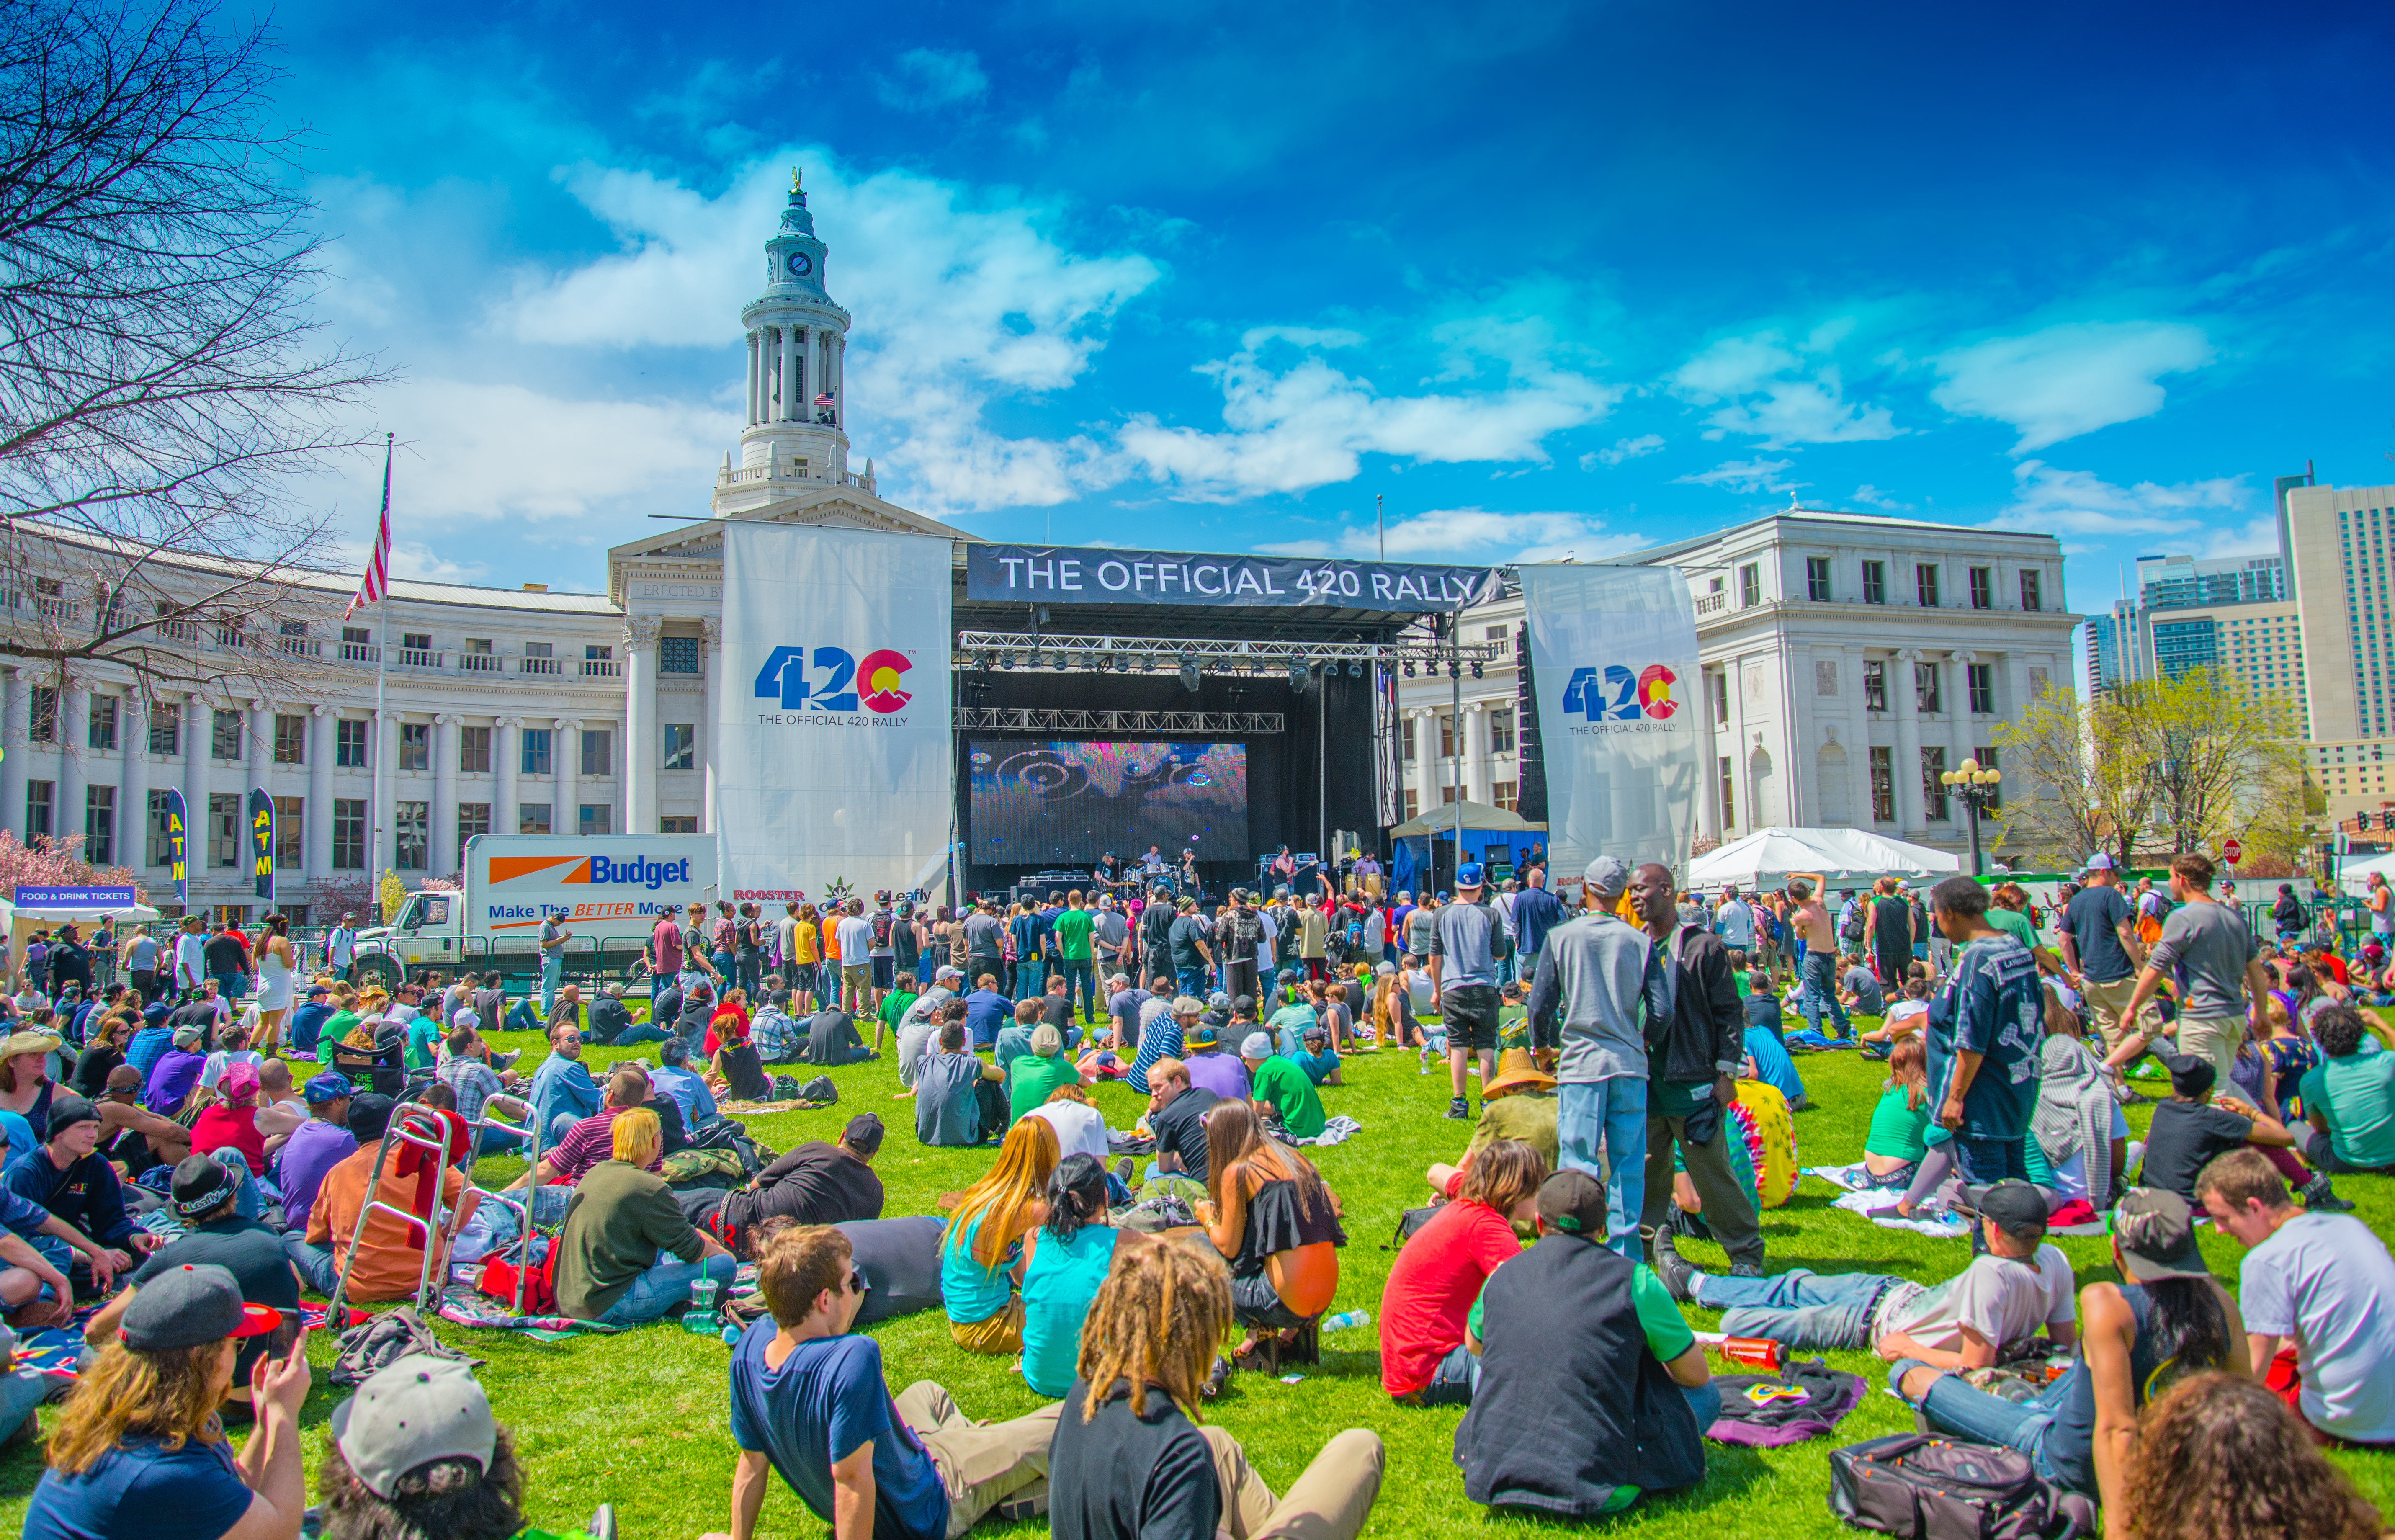 420 Rally, Denver Civic Center Park 2014 Official Main Stage. Image ©Fara Paige